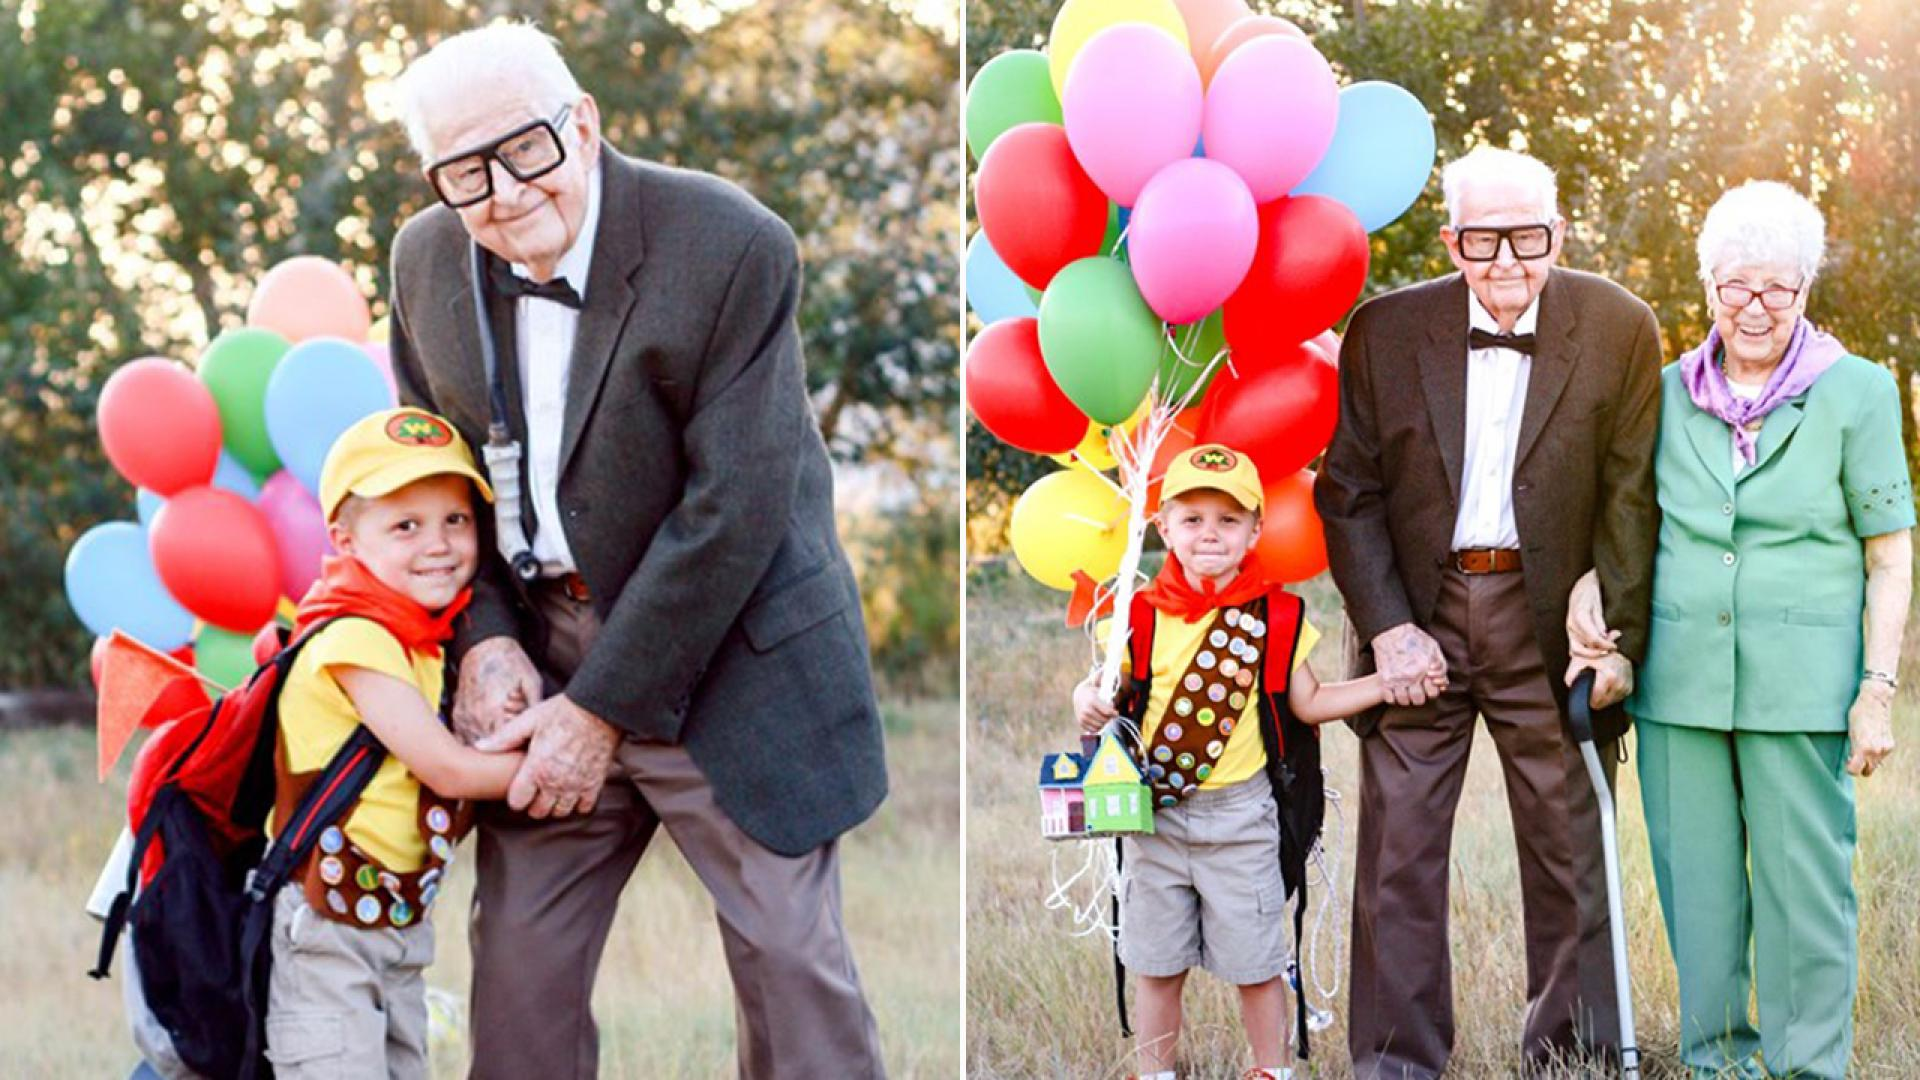 Elijah Perman, 5, celebrates his birthday with a sweet photo shoot, featuring his great-grandparents.